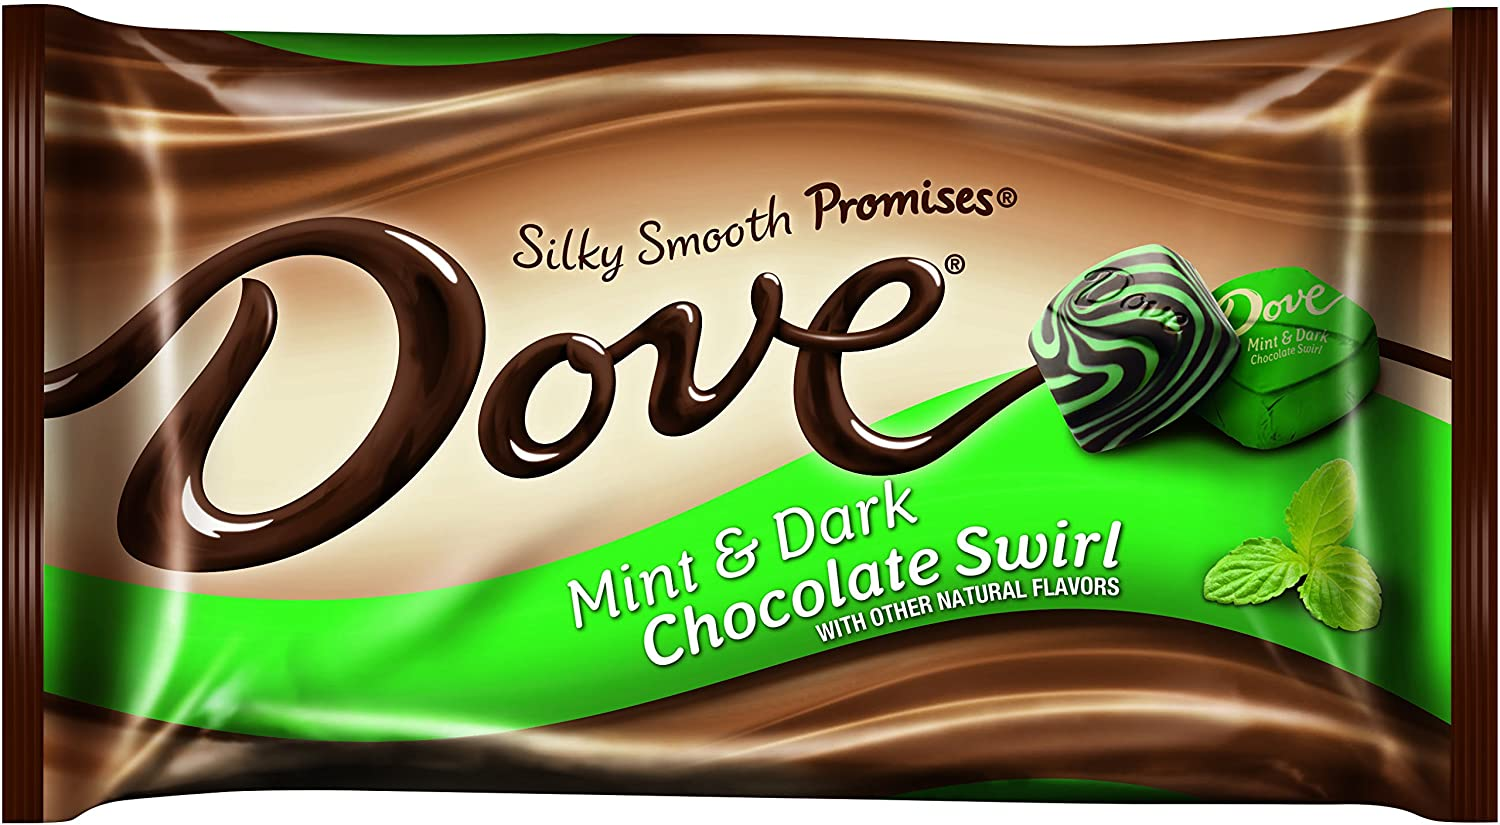 Dove Dark Chocolate Mint Swirl Promises Bag, 8.5 Ounce